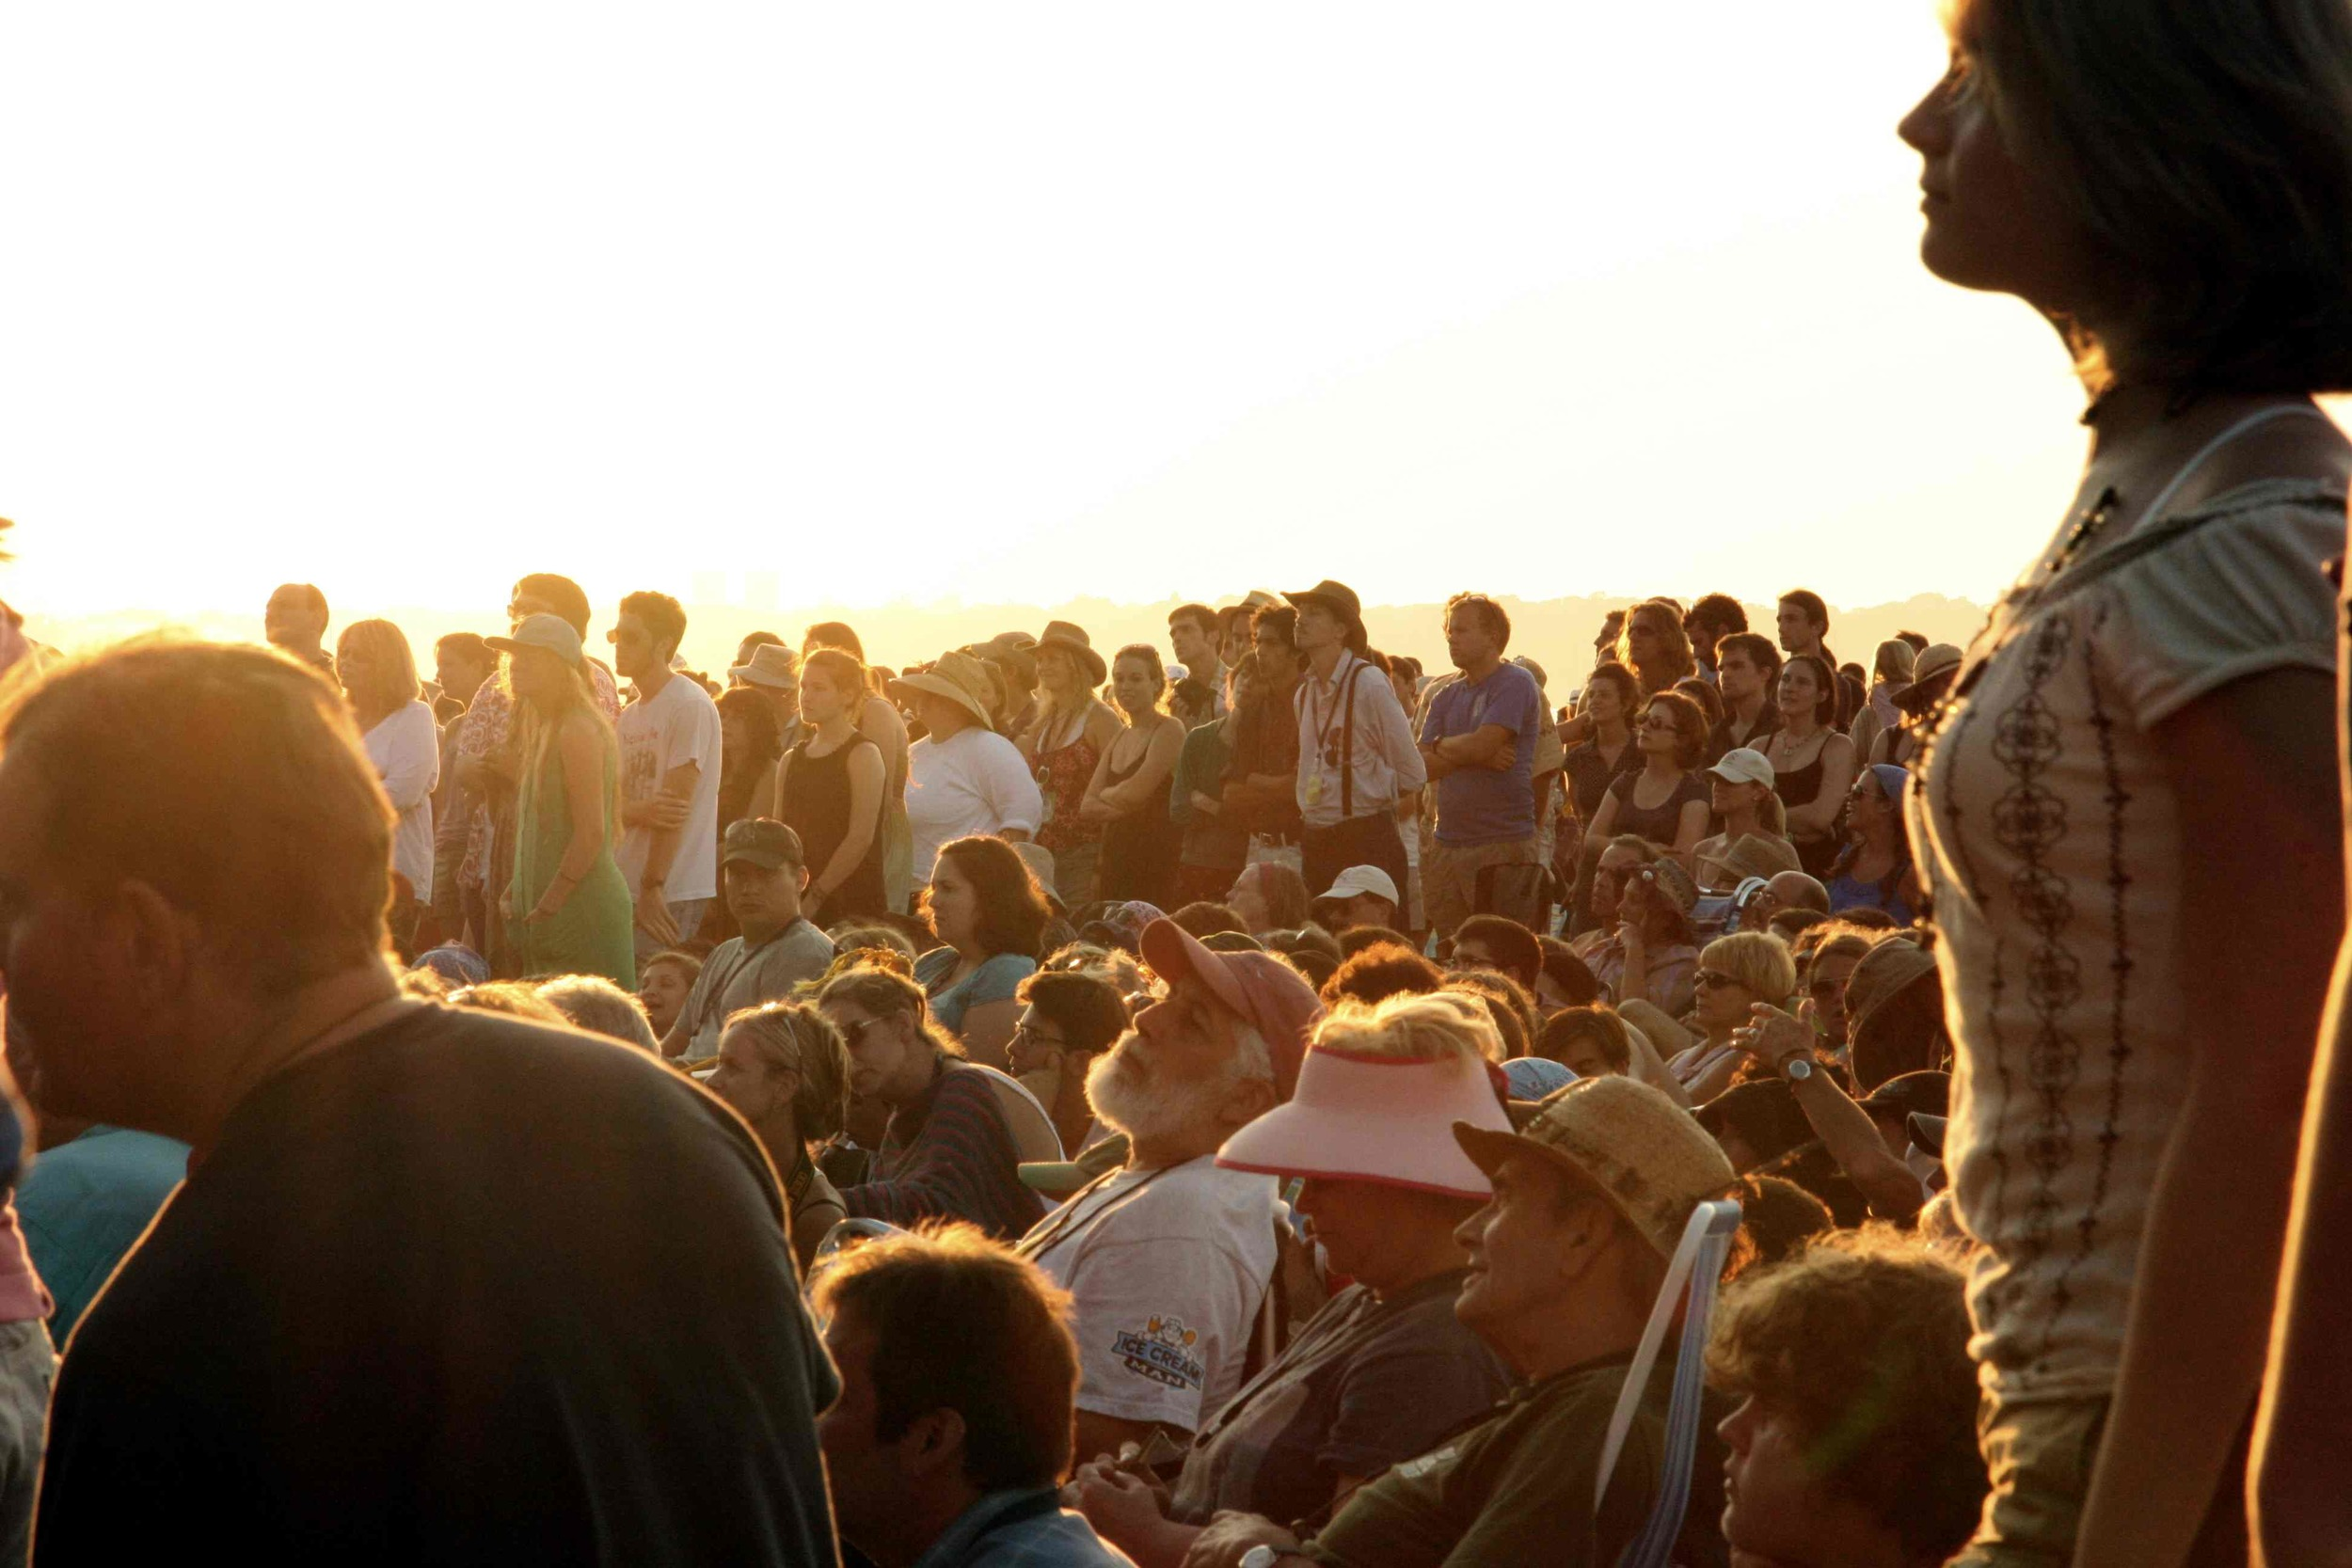 singalong-crowd-3.jpg